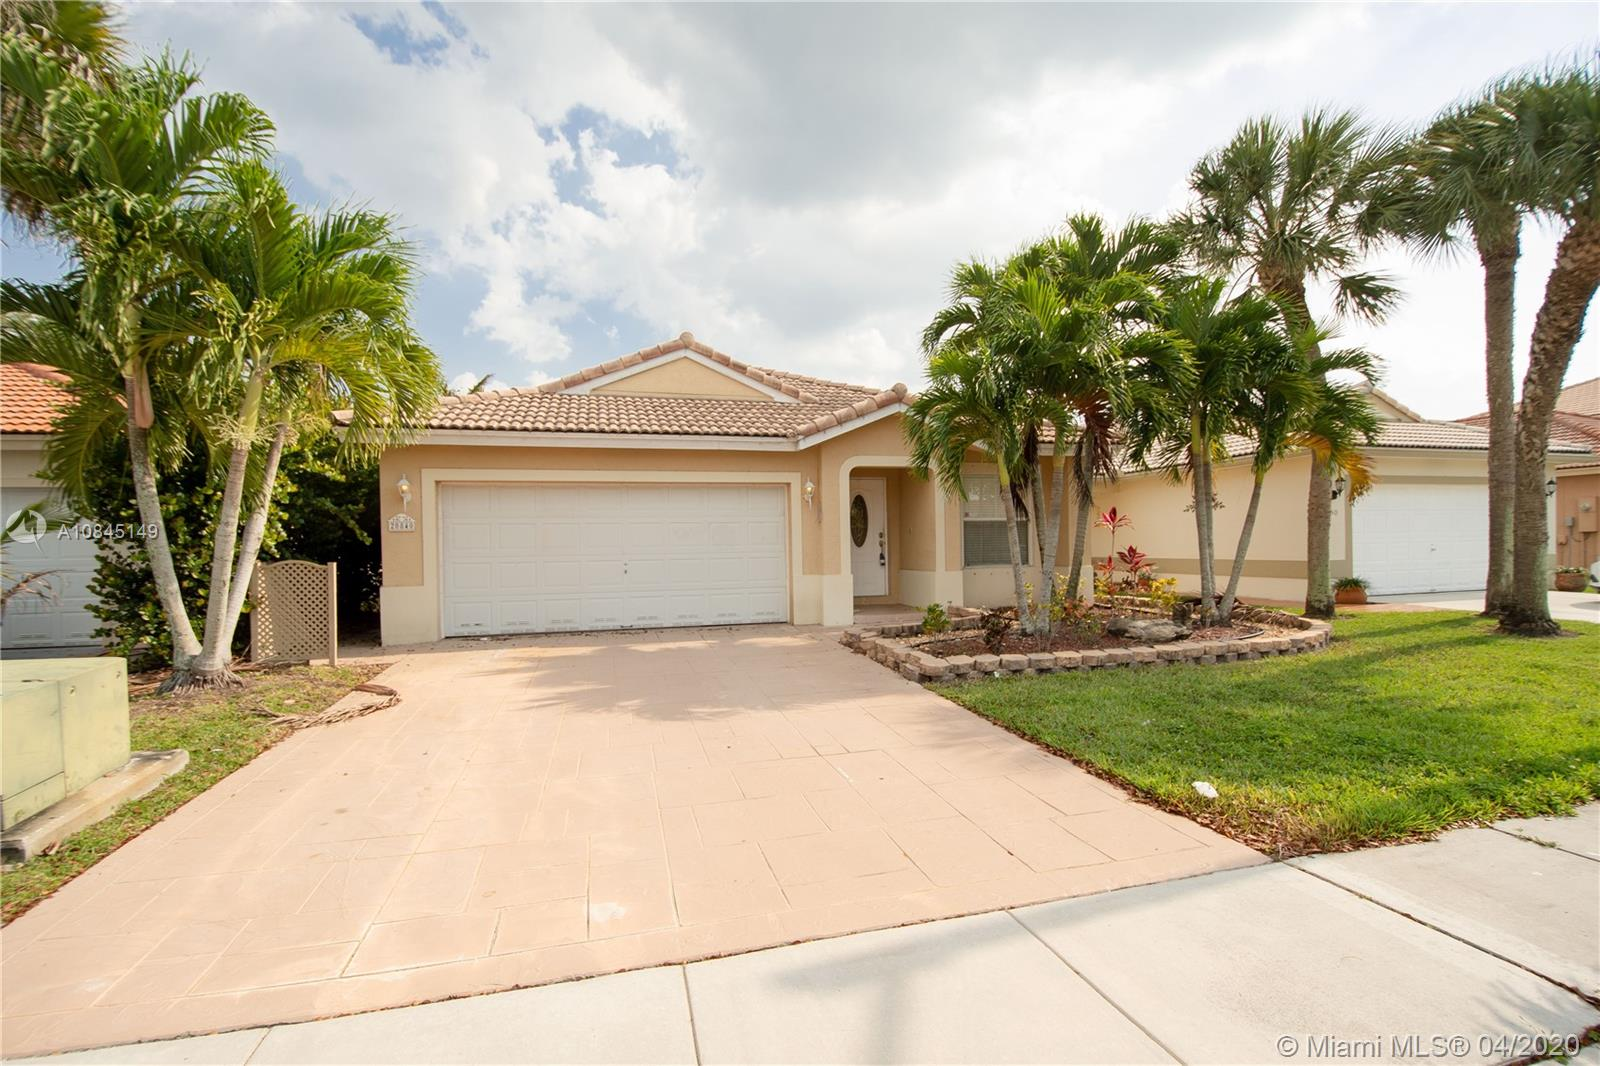 LOCATION..LOCATION..MINUTES TO I-75, I-595, RTE 27...THIS WELL MAINTAINED 3 B/R, 2 BATH, SINGLE STORY HOME IS LOCATED IN A GATED COMMUNITY IN WESTERN PEMBROKE PINES IN A PARK LIKE SETTING, RECREATION AREA, COMMUNITY POOL...NEWER A/C, COMPRESSOR 2018,AIR HANDLER 2016..WOOD FLOORS..OVERSIZED GARAGE HAS A WORK SINK AND ROOM FOR STORAGE..HOA FEES INCLUDE TV AND INTERNET SERVICE..ABUNDANT LOCAL SHOPPING... A SHORT DISTANCE FROM THE PEMBROKE PINES REGIONAL MALL....CLOSE TO SCHOOLS AND HOUSES OF WORSHIP.